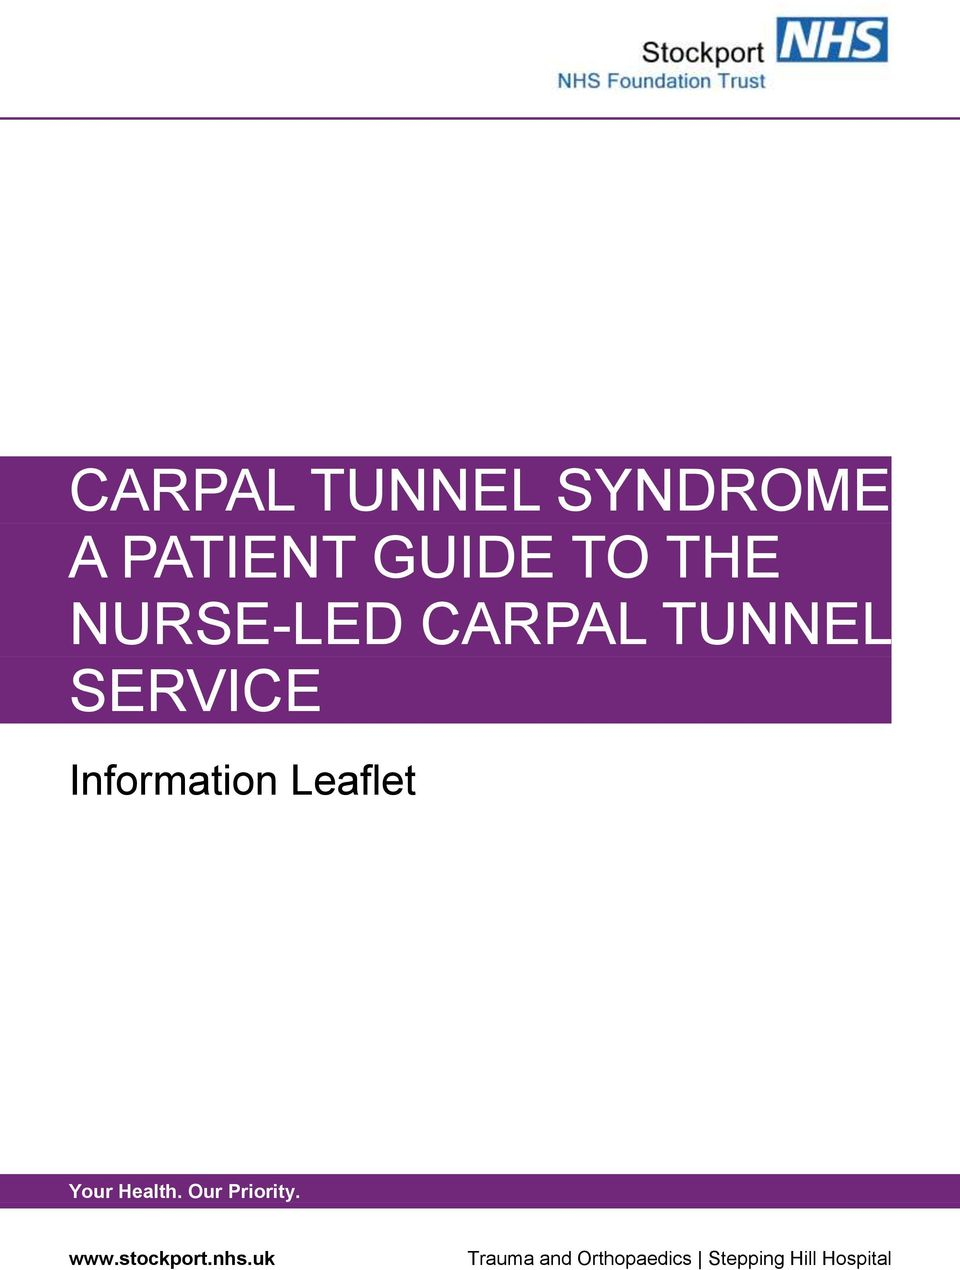 CARPAL TUNNEL SERVICE